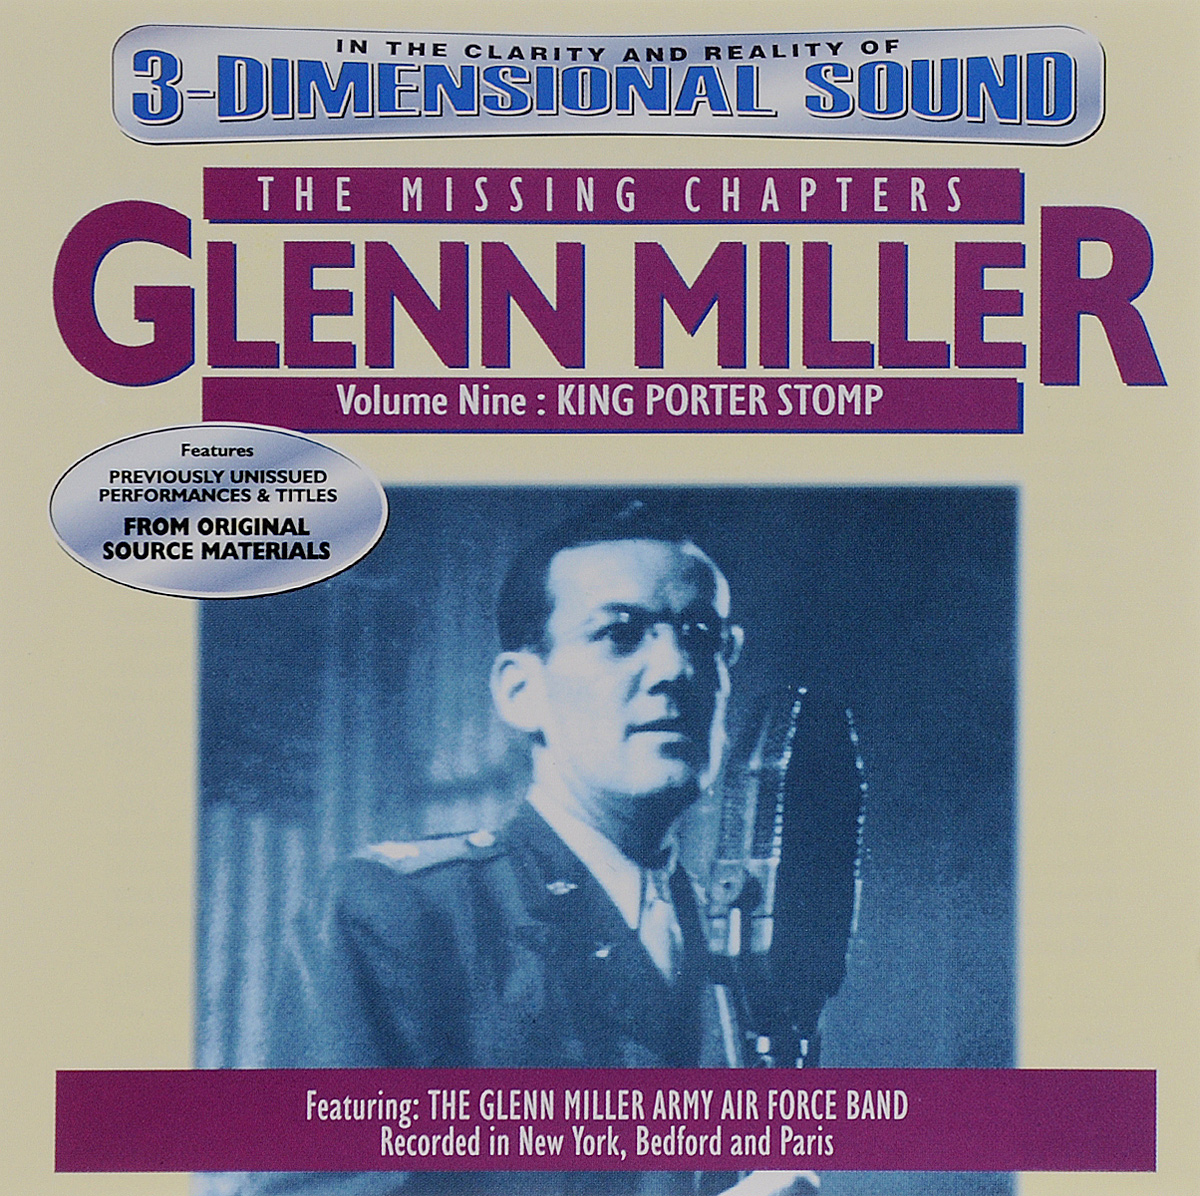 Гленн Миллер Glenn Miller. The Missing Chapters. Volume 9. King Porter Stomp альберт эммонс рут браун the clovers гленн миллер энди разаф джимми янси клео браун классика для детей джаз mp3